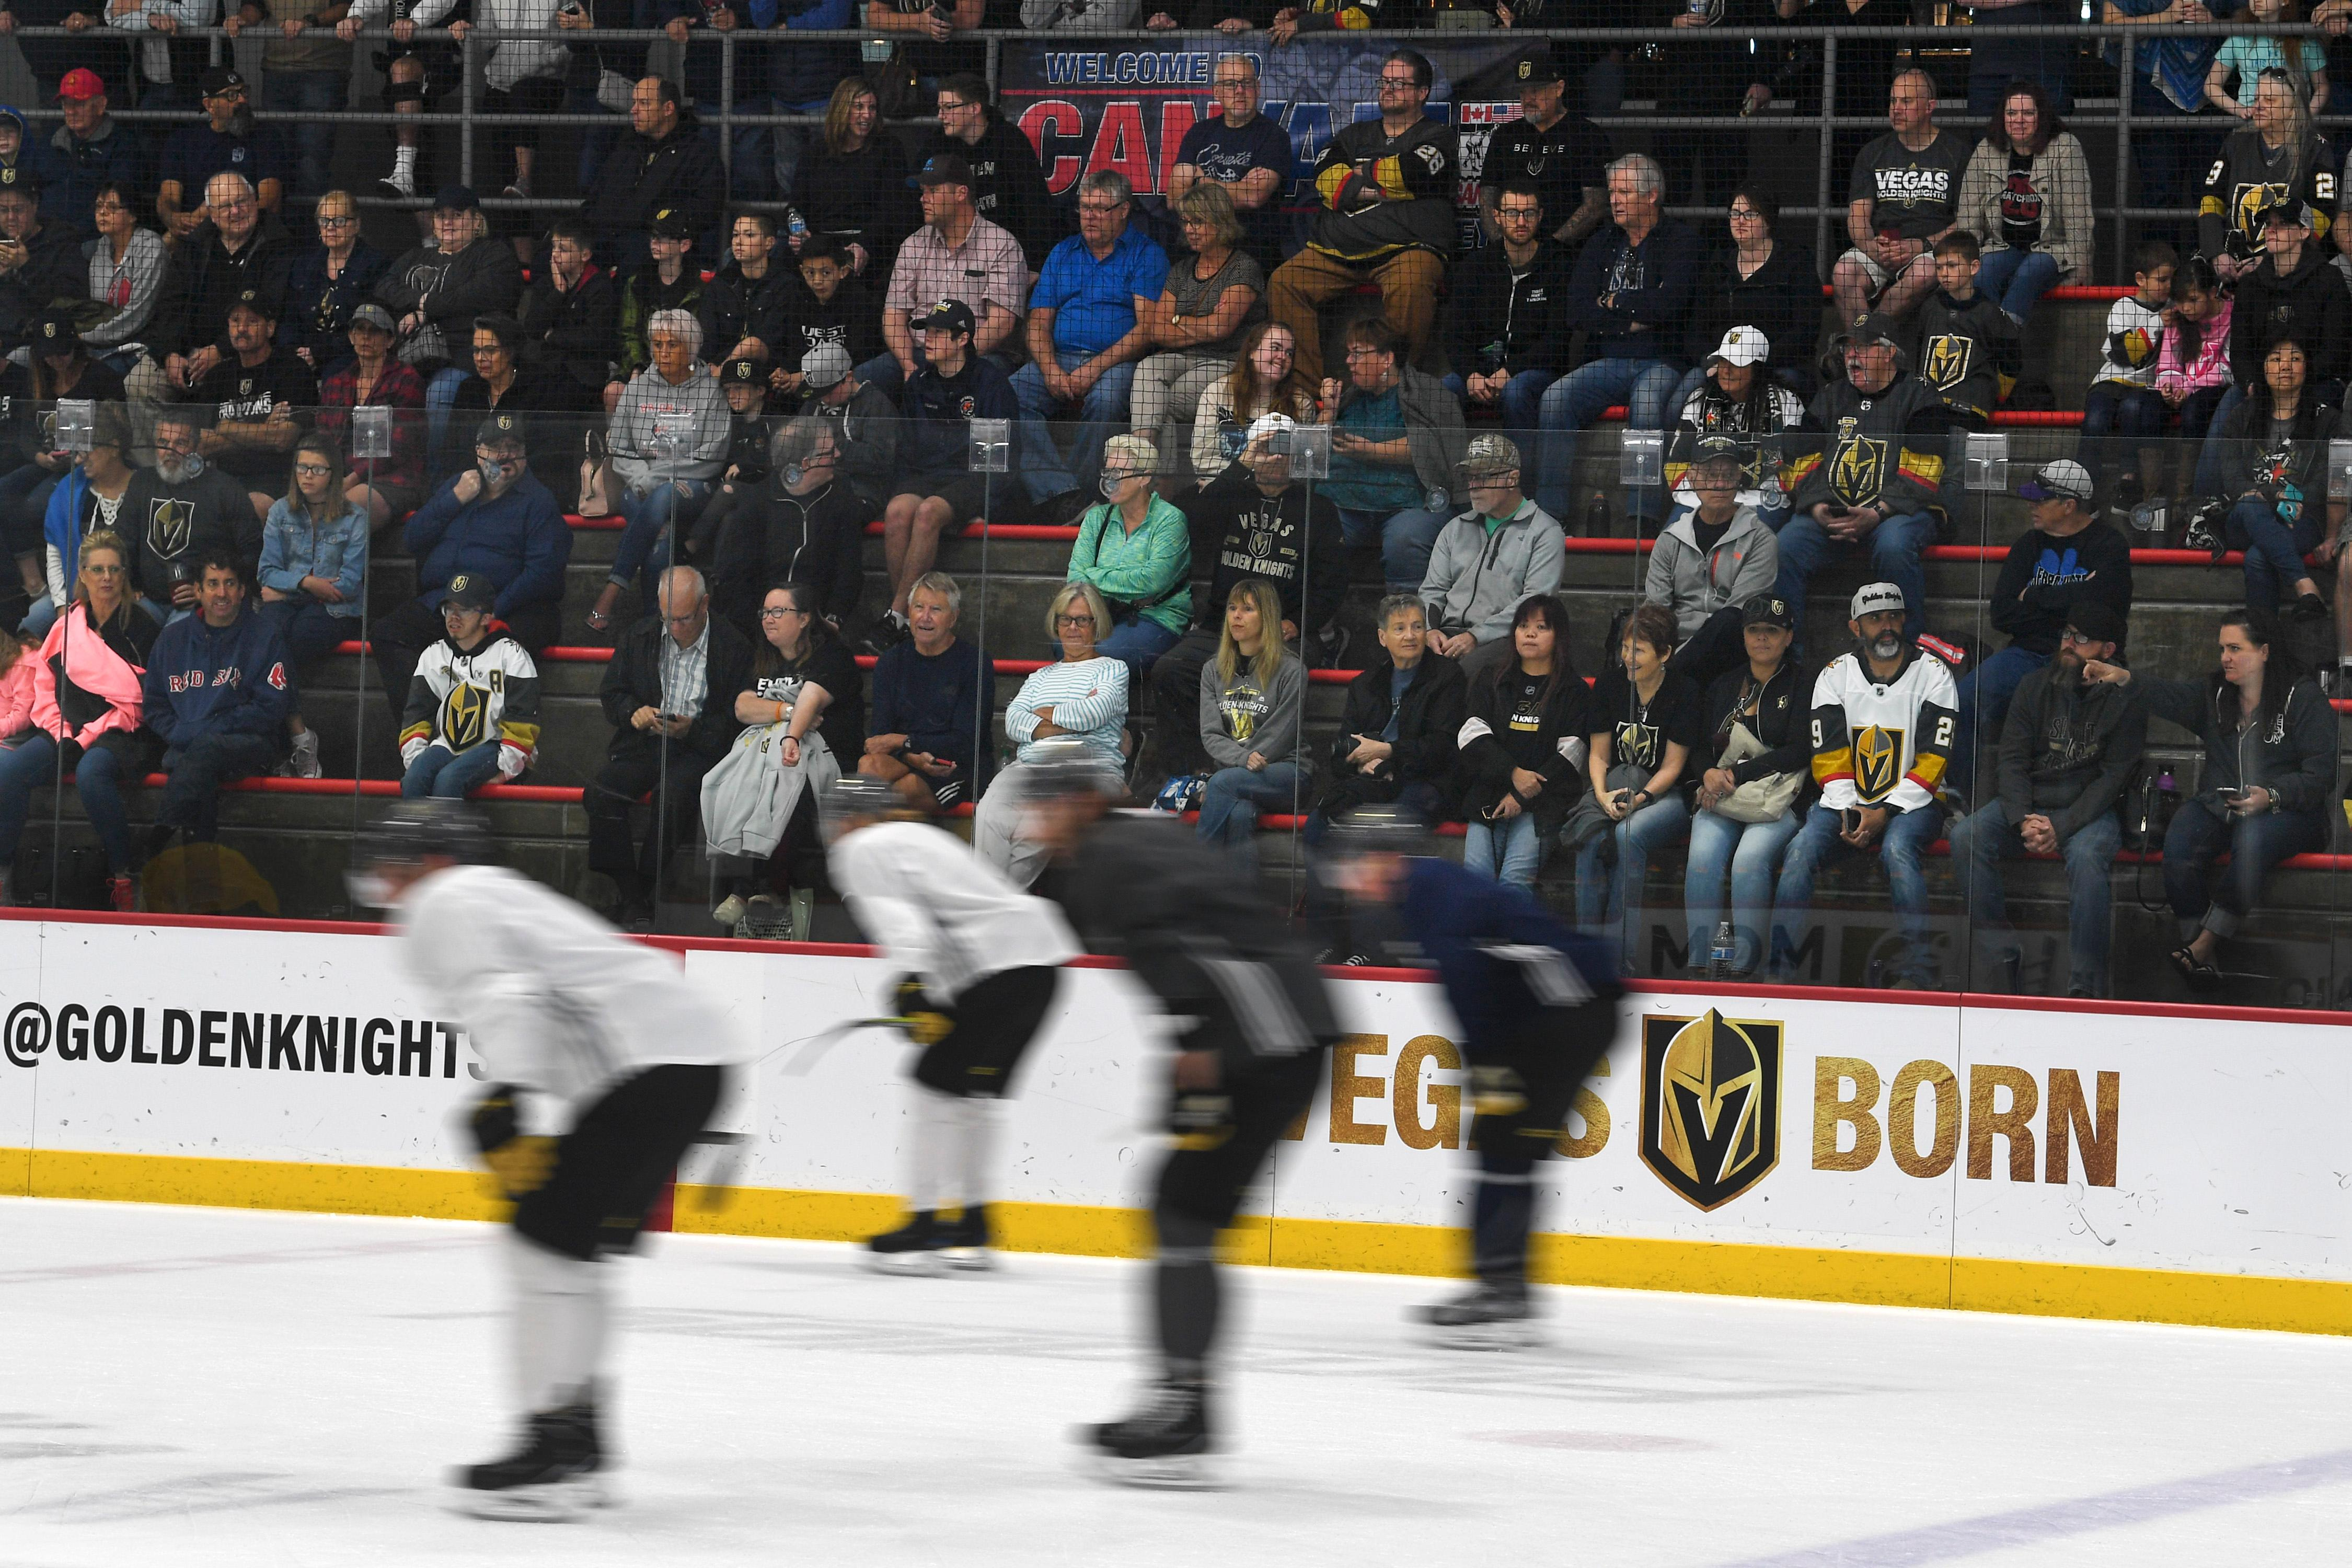 Fans watch players skate during the Vegas Golden Knights practice Friday, April 20, 2018, at City National Arena in Las Vegas. CREDIT: Sam Morris/Las Vegas News Bureau